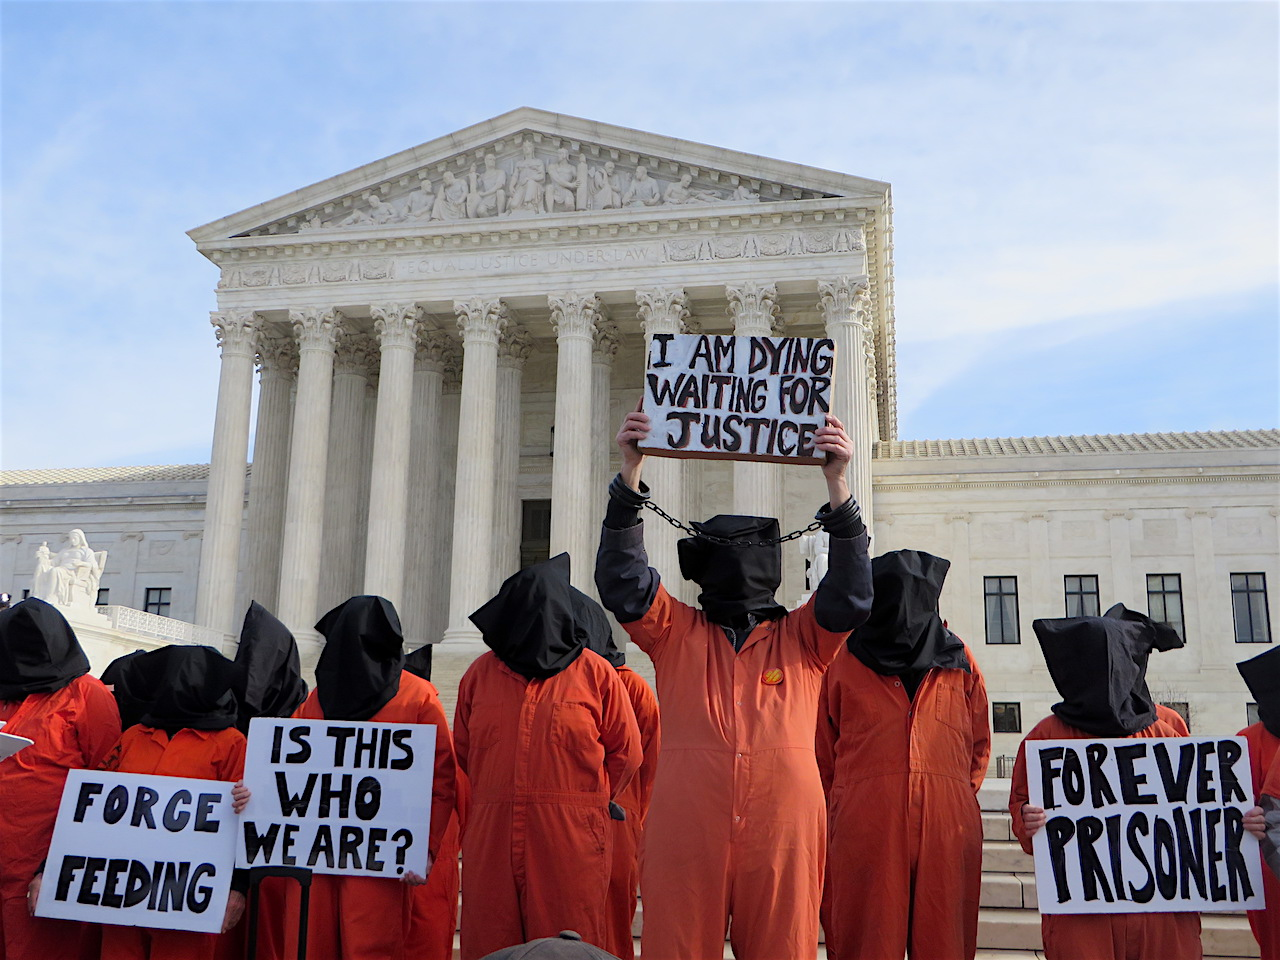 Protestors with Witness Against Torture outside the Supreme Court, calling for the closure of Guantanamo on Jan. 11, 2017, the 15th anniversary of the prison's opening (Photo: Andy Worthington).